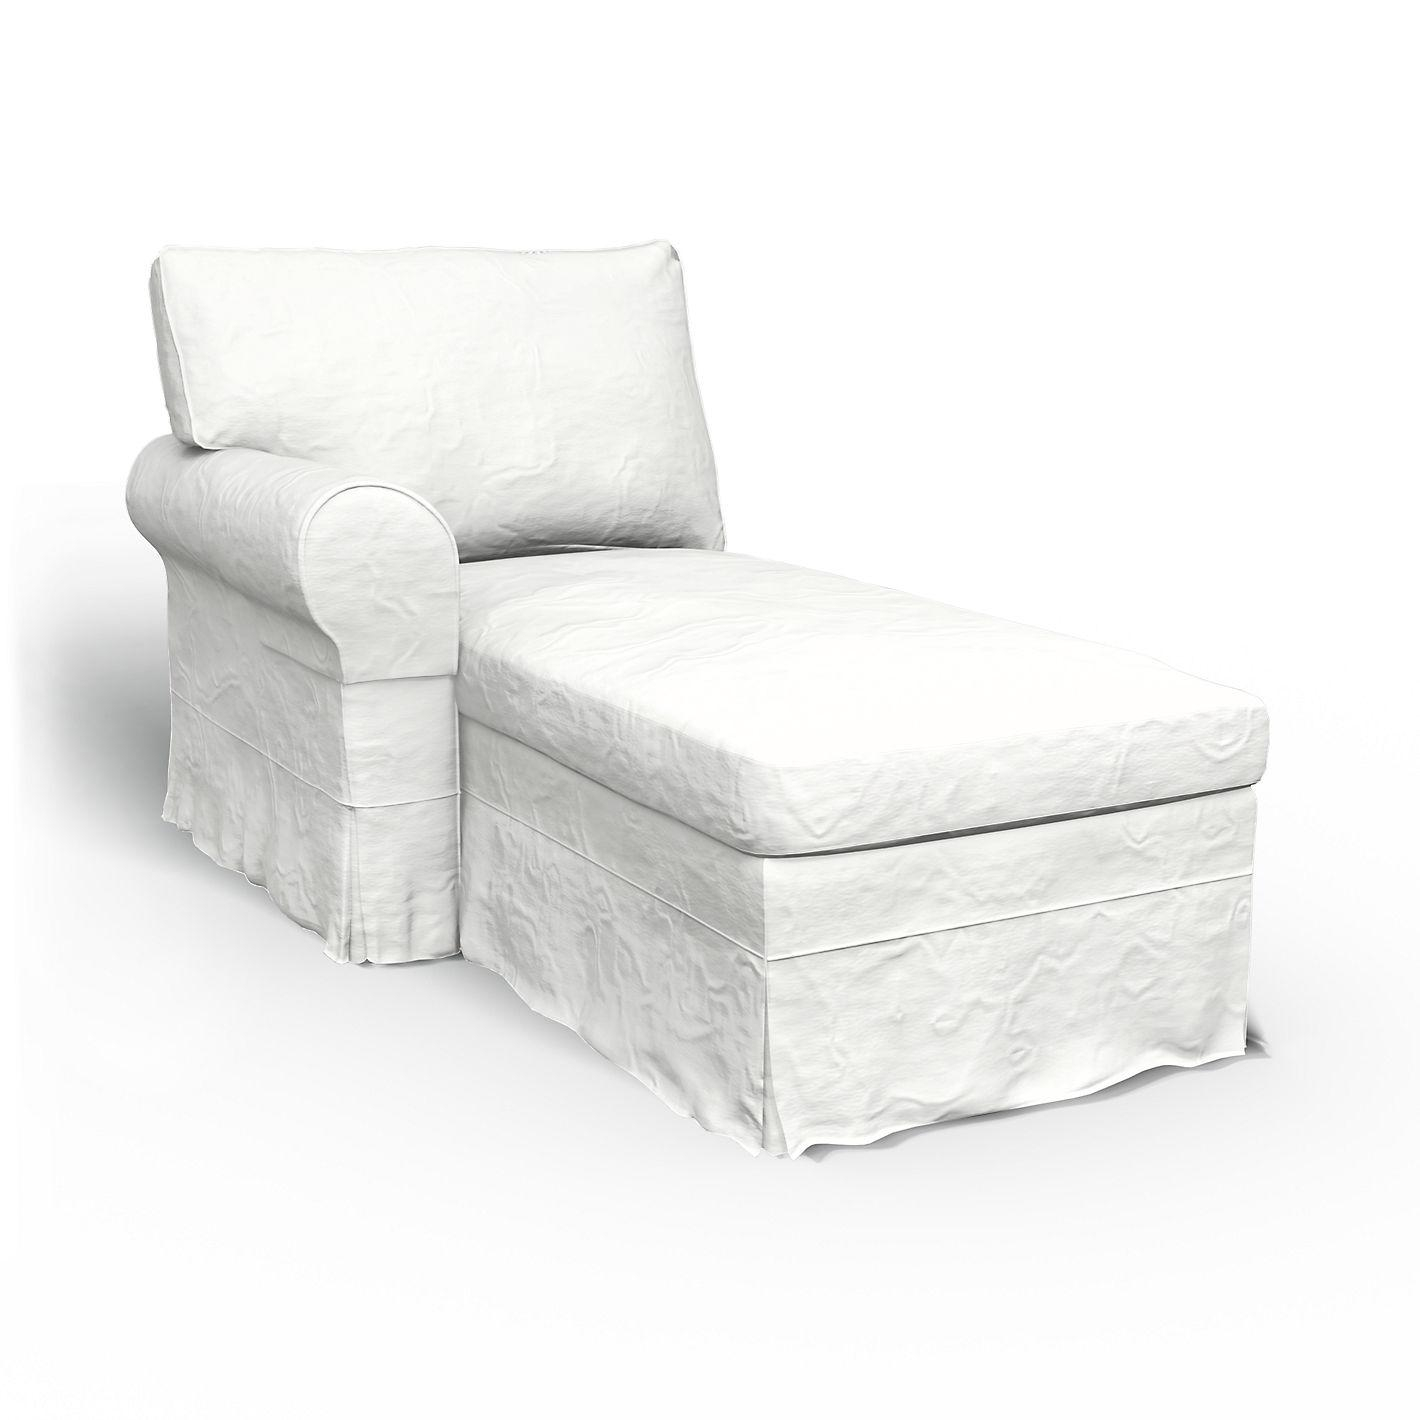 Decor: Comfortable Lounge Chair Design With Chaise Lounge Inside Slipcovers For Chaise Lounge Sofas (Image 5 of 20)